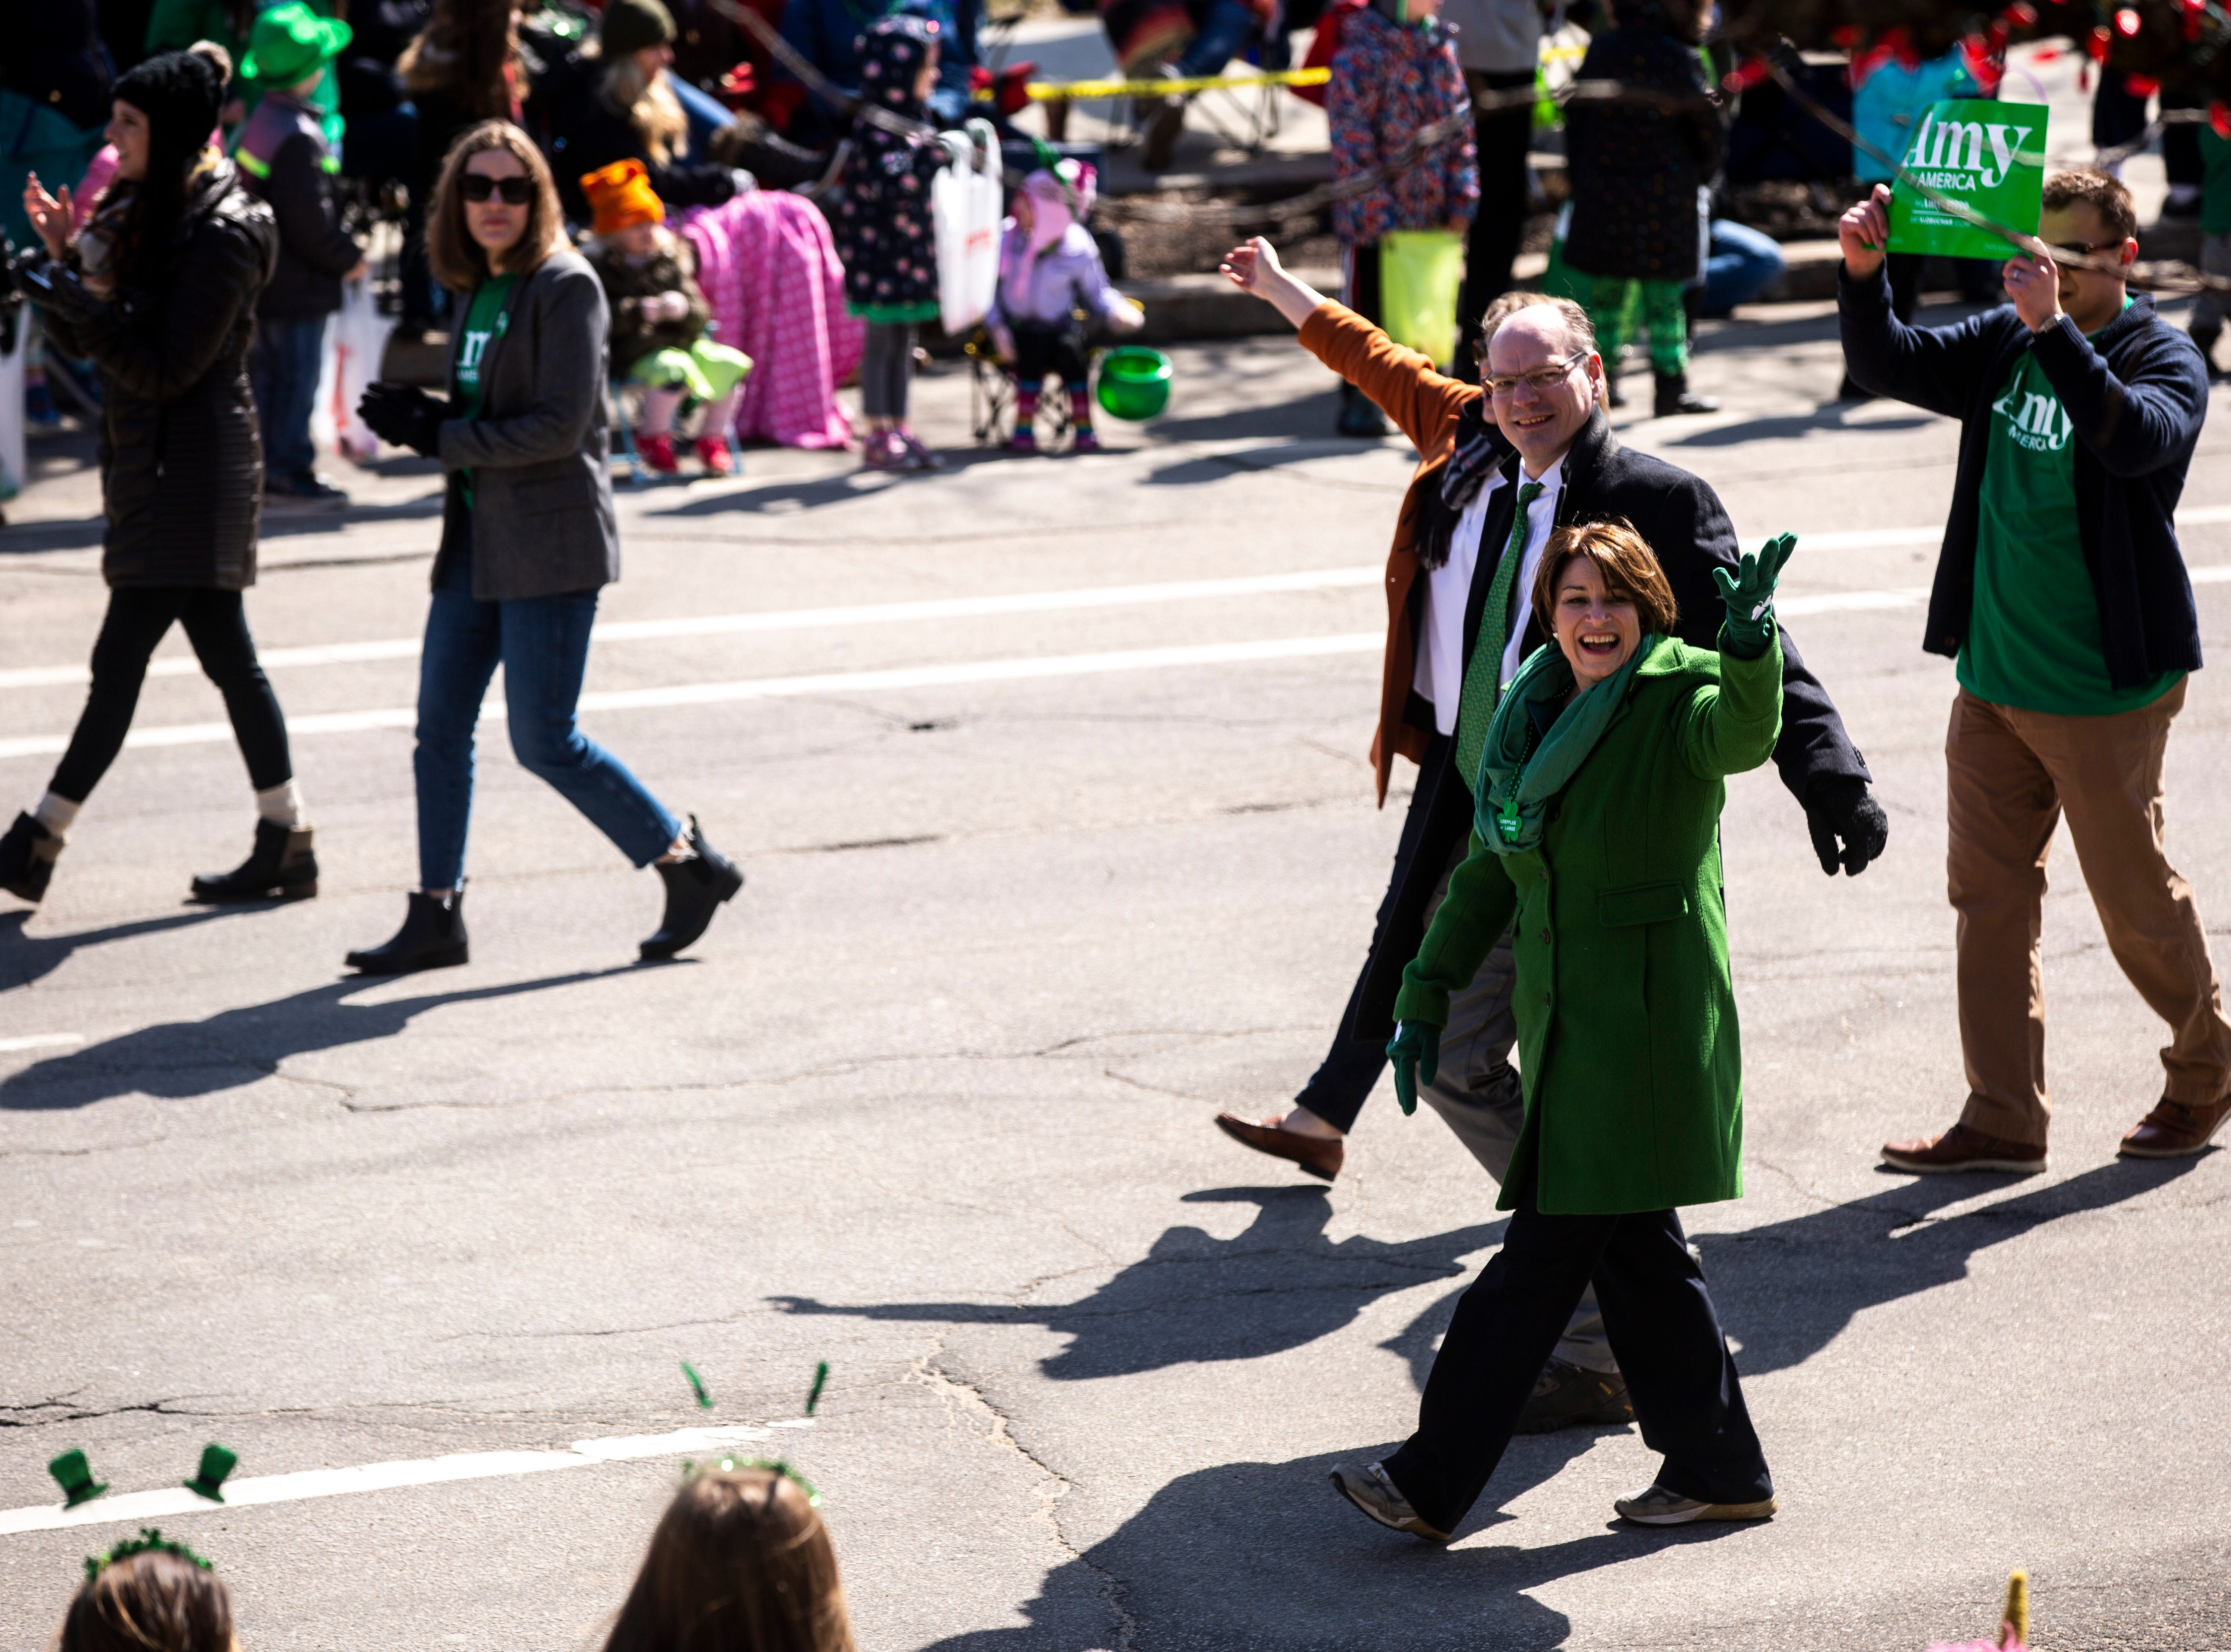 U.S. Sen. Amy Klobuchar, D-Minn., waves to people while walking with her husband John Bessler in the Saint Patrick's Day Parade Society (SaPaDaPaSo) parade on Sunday, March 17, 2019, in downtown Cedar Rapids, Iowa.